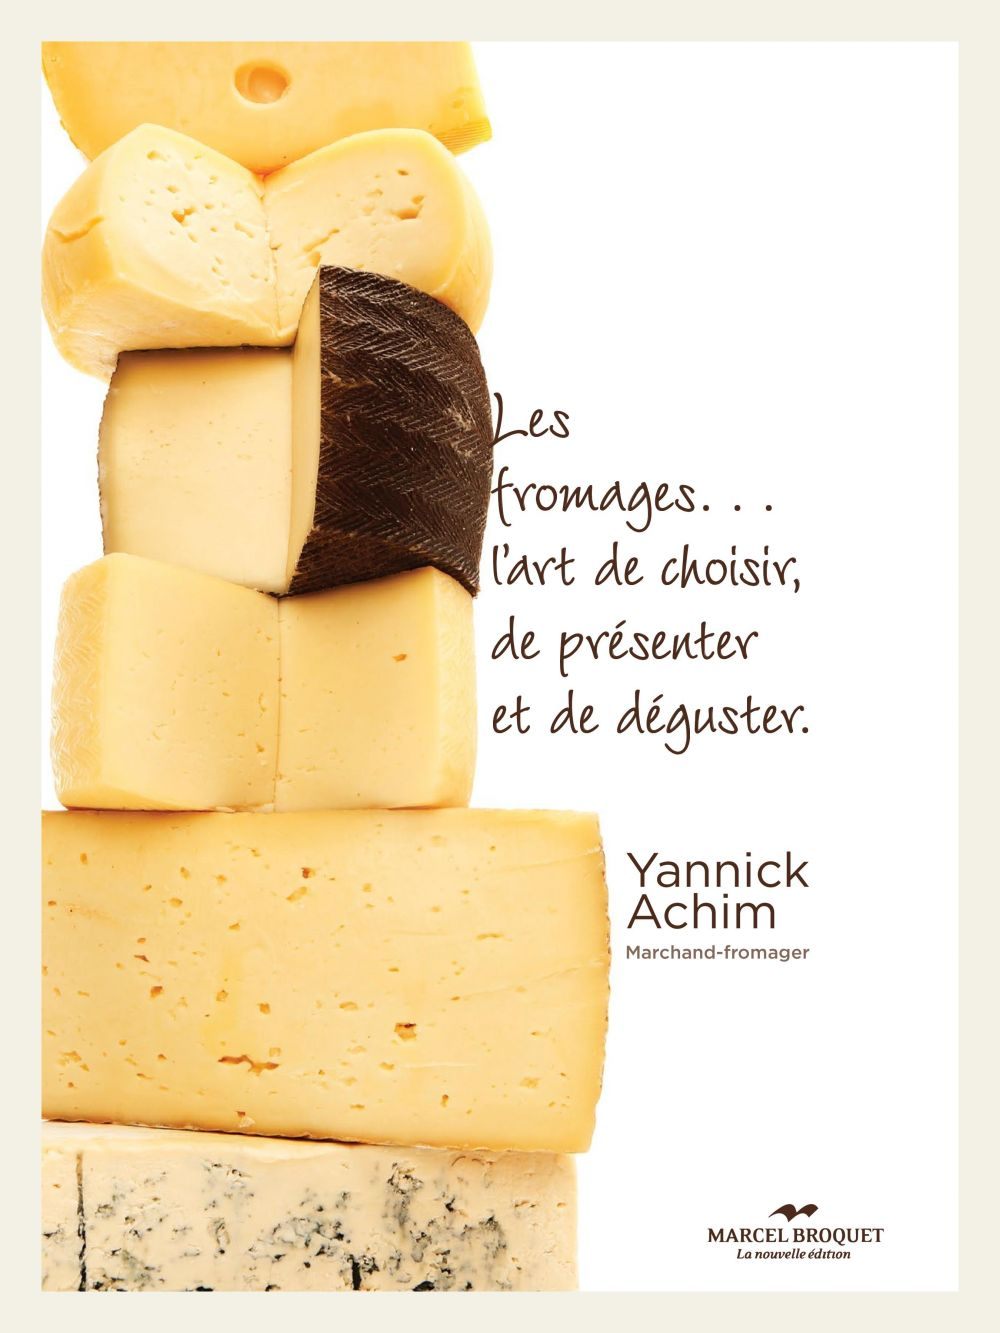 Yannick Achim, Marchand-fromager